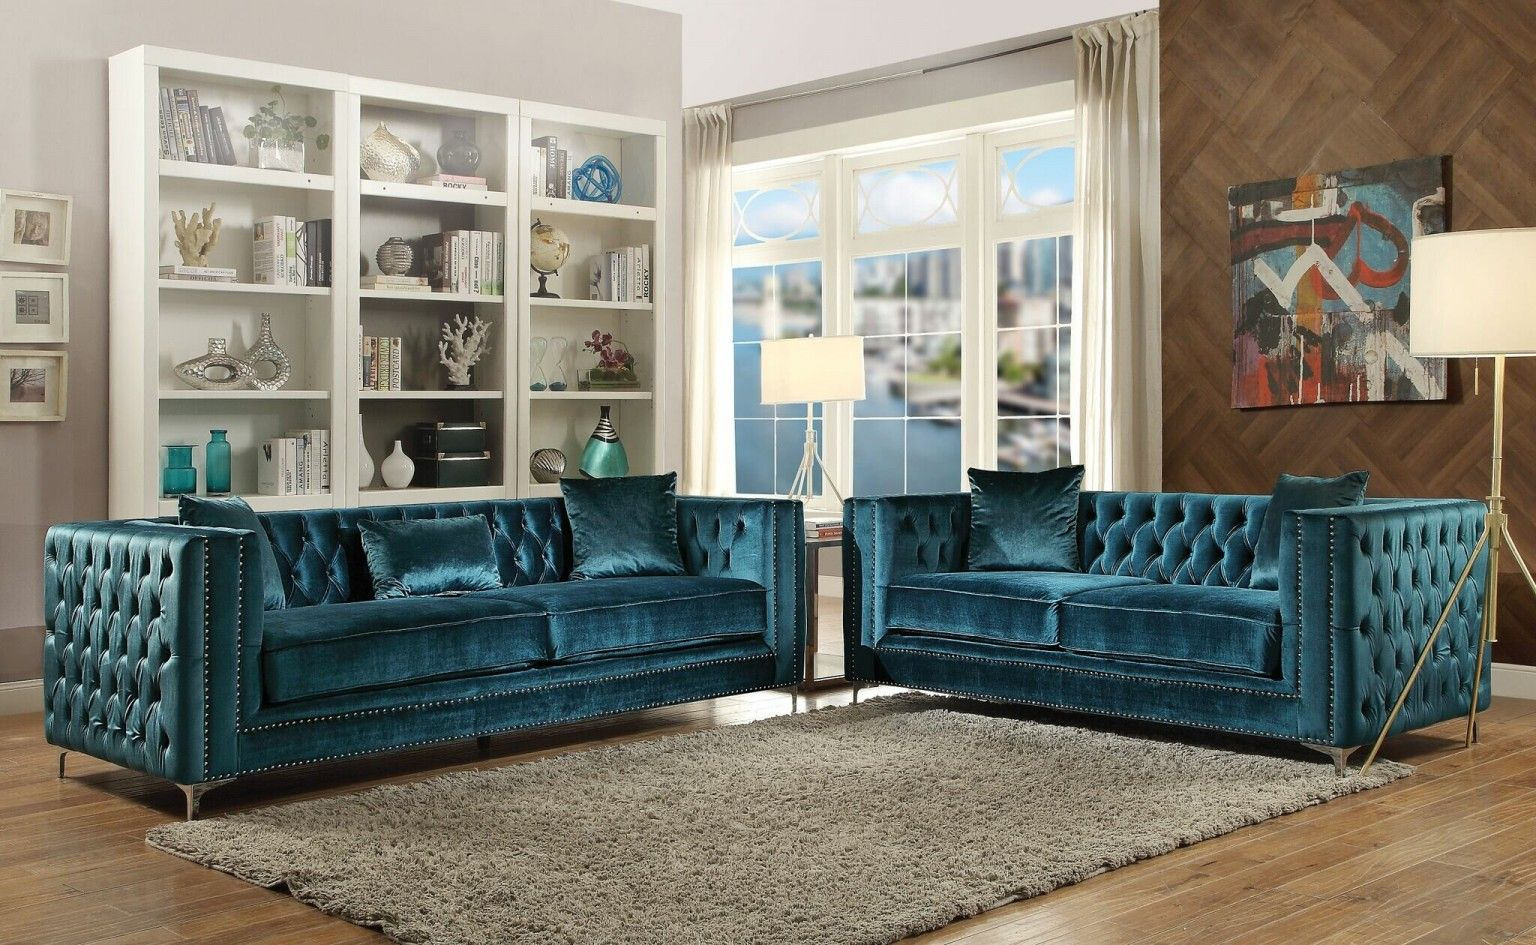 Turquoise Living Room Set In 2020 Living Room Turquoise Living Room Sets Leather Living Room Set